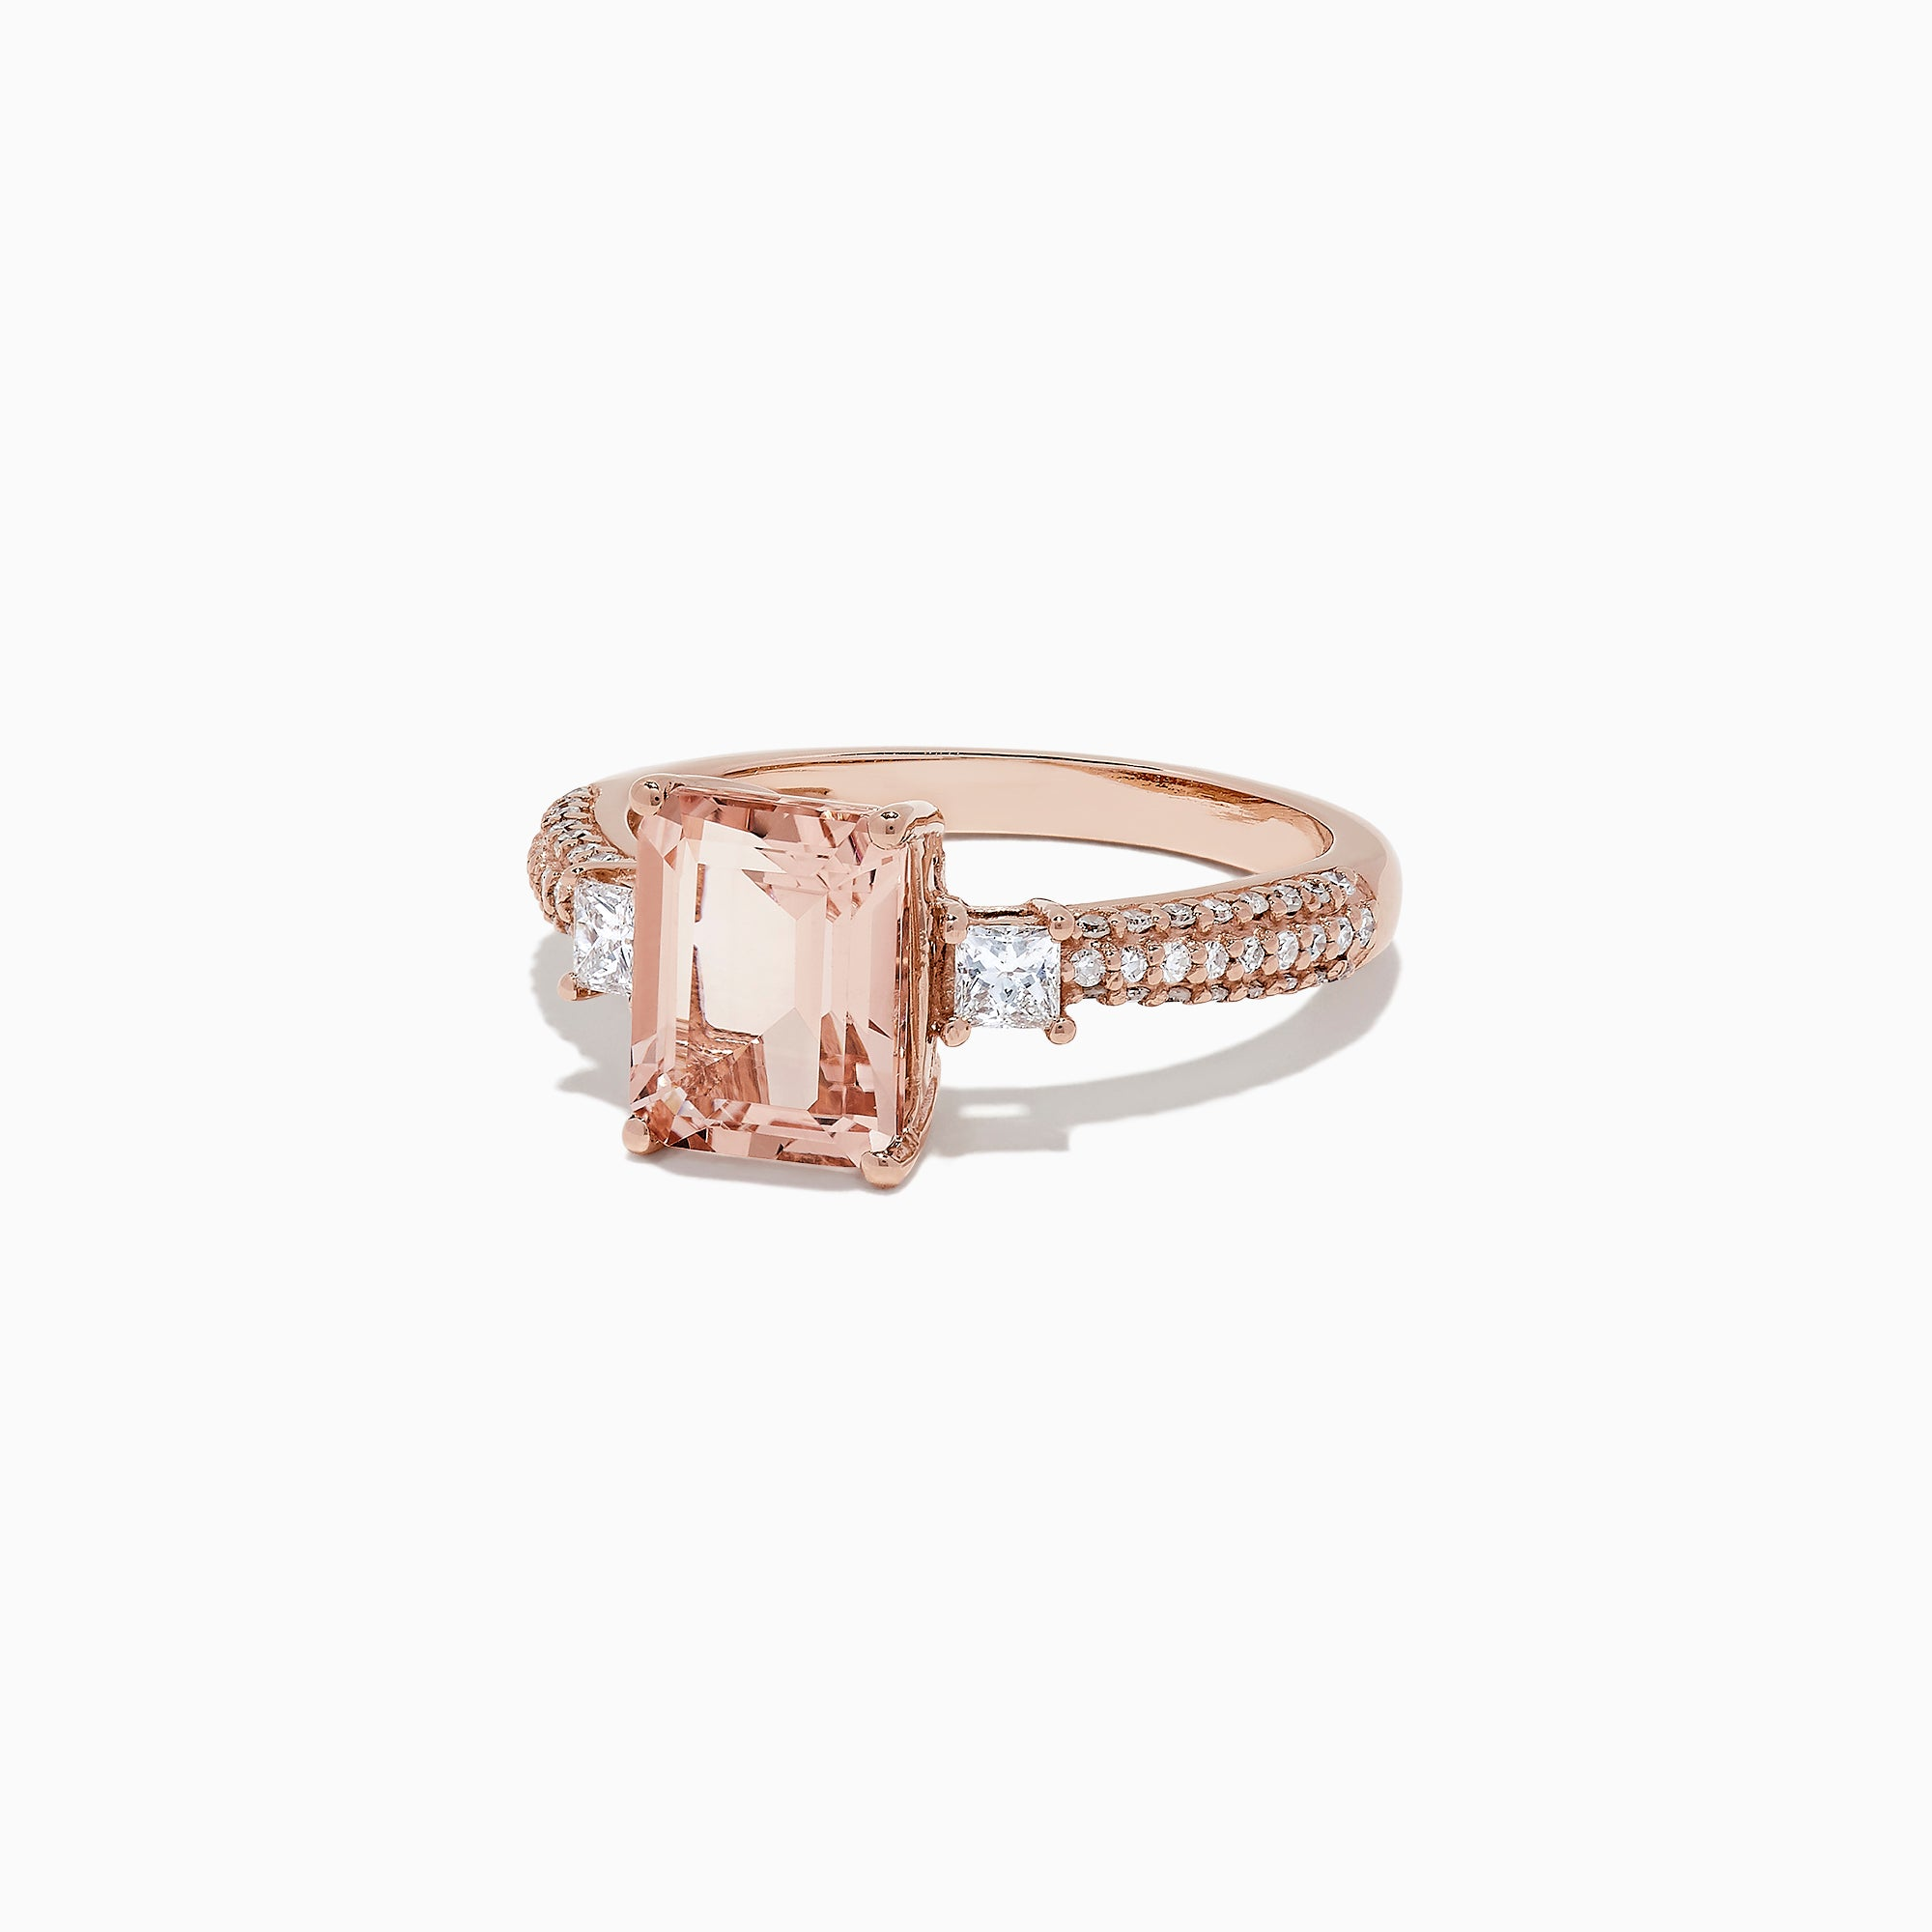 Effy Blush 14K Rose Gold Morganite and Diamond Ring, 2.59 TCW